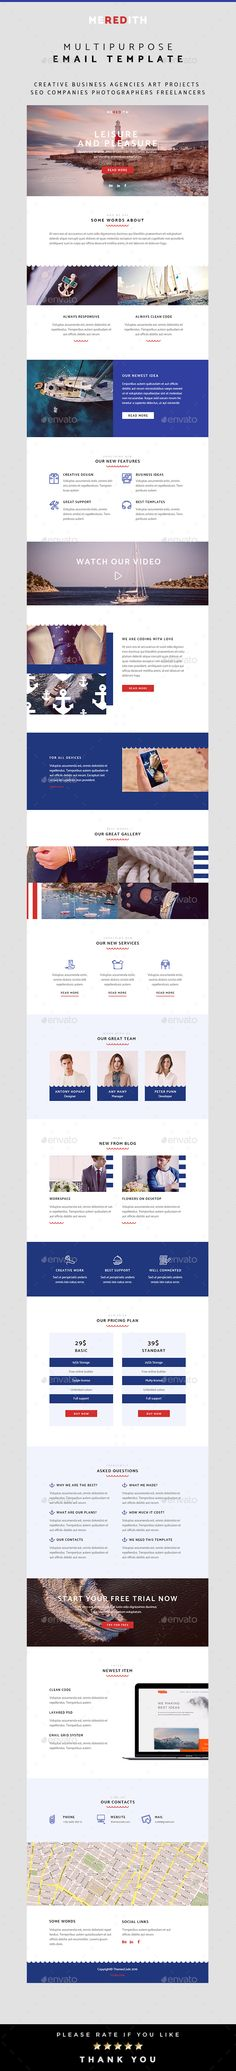 Meredith – Multipurpose Email Template by ThemesCode Email Templates, Newsletter Templates, Graphic Design, Creative Design, Graphics, Charts